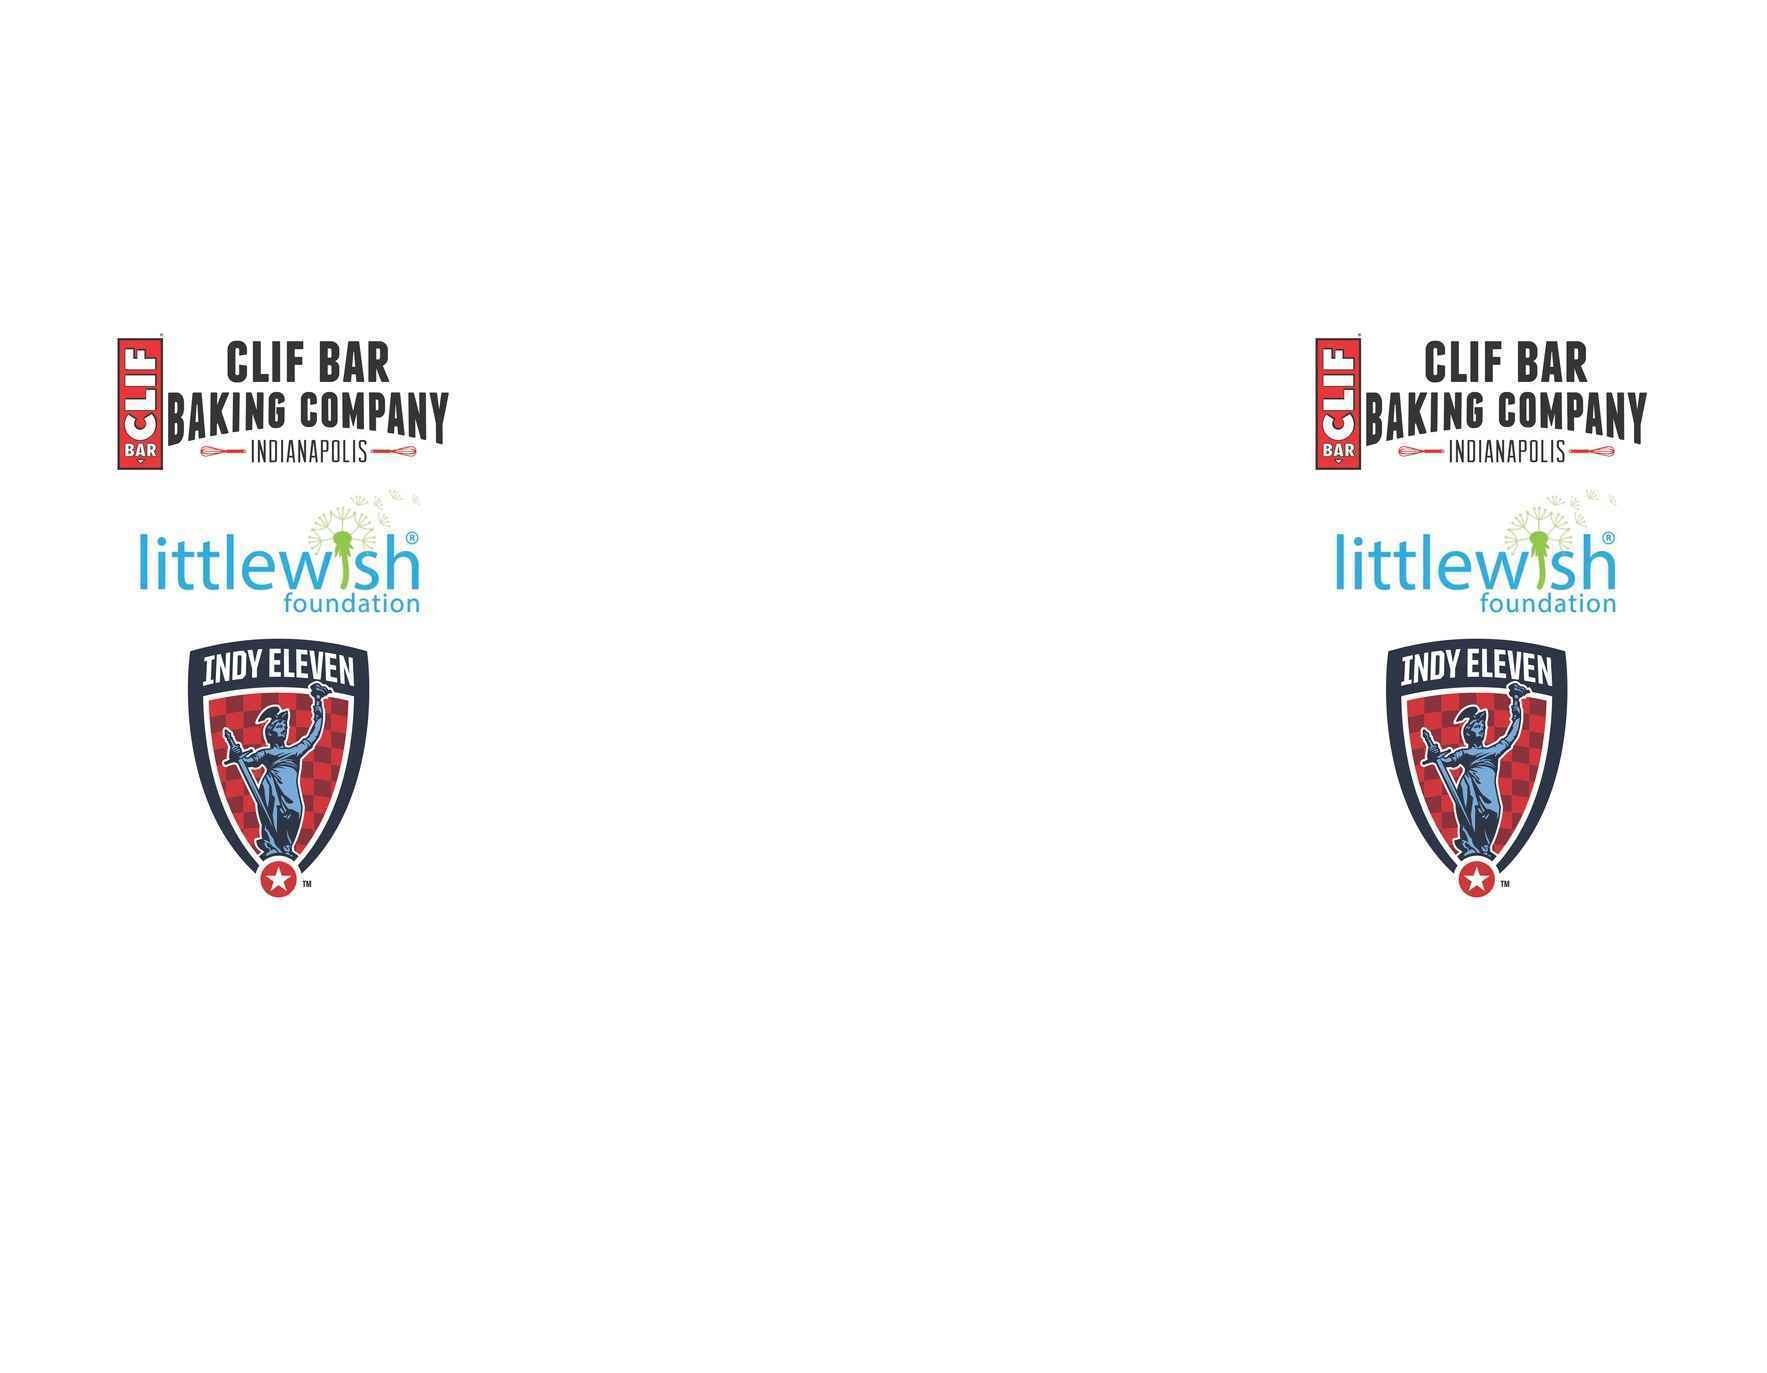 Help Indy Eleven and Clif Bar Grant a Little Wish image